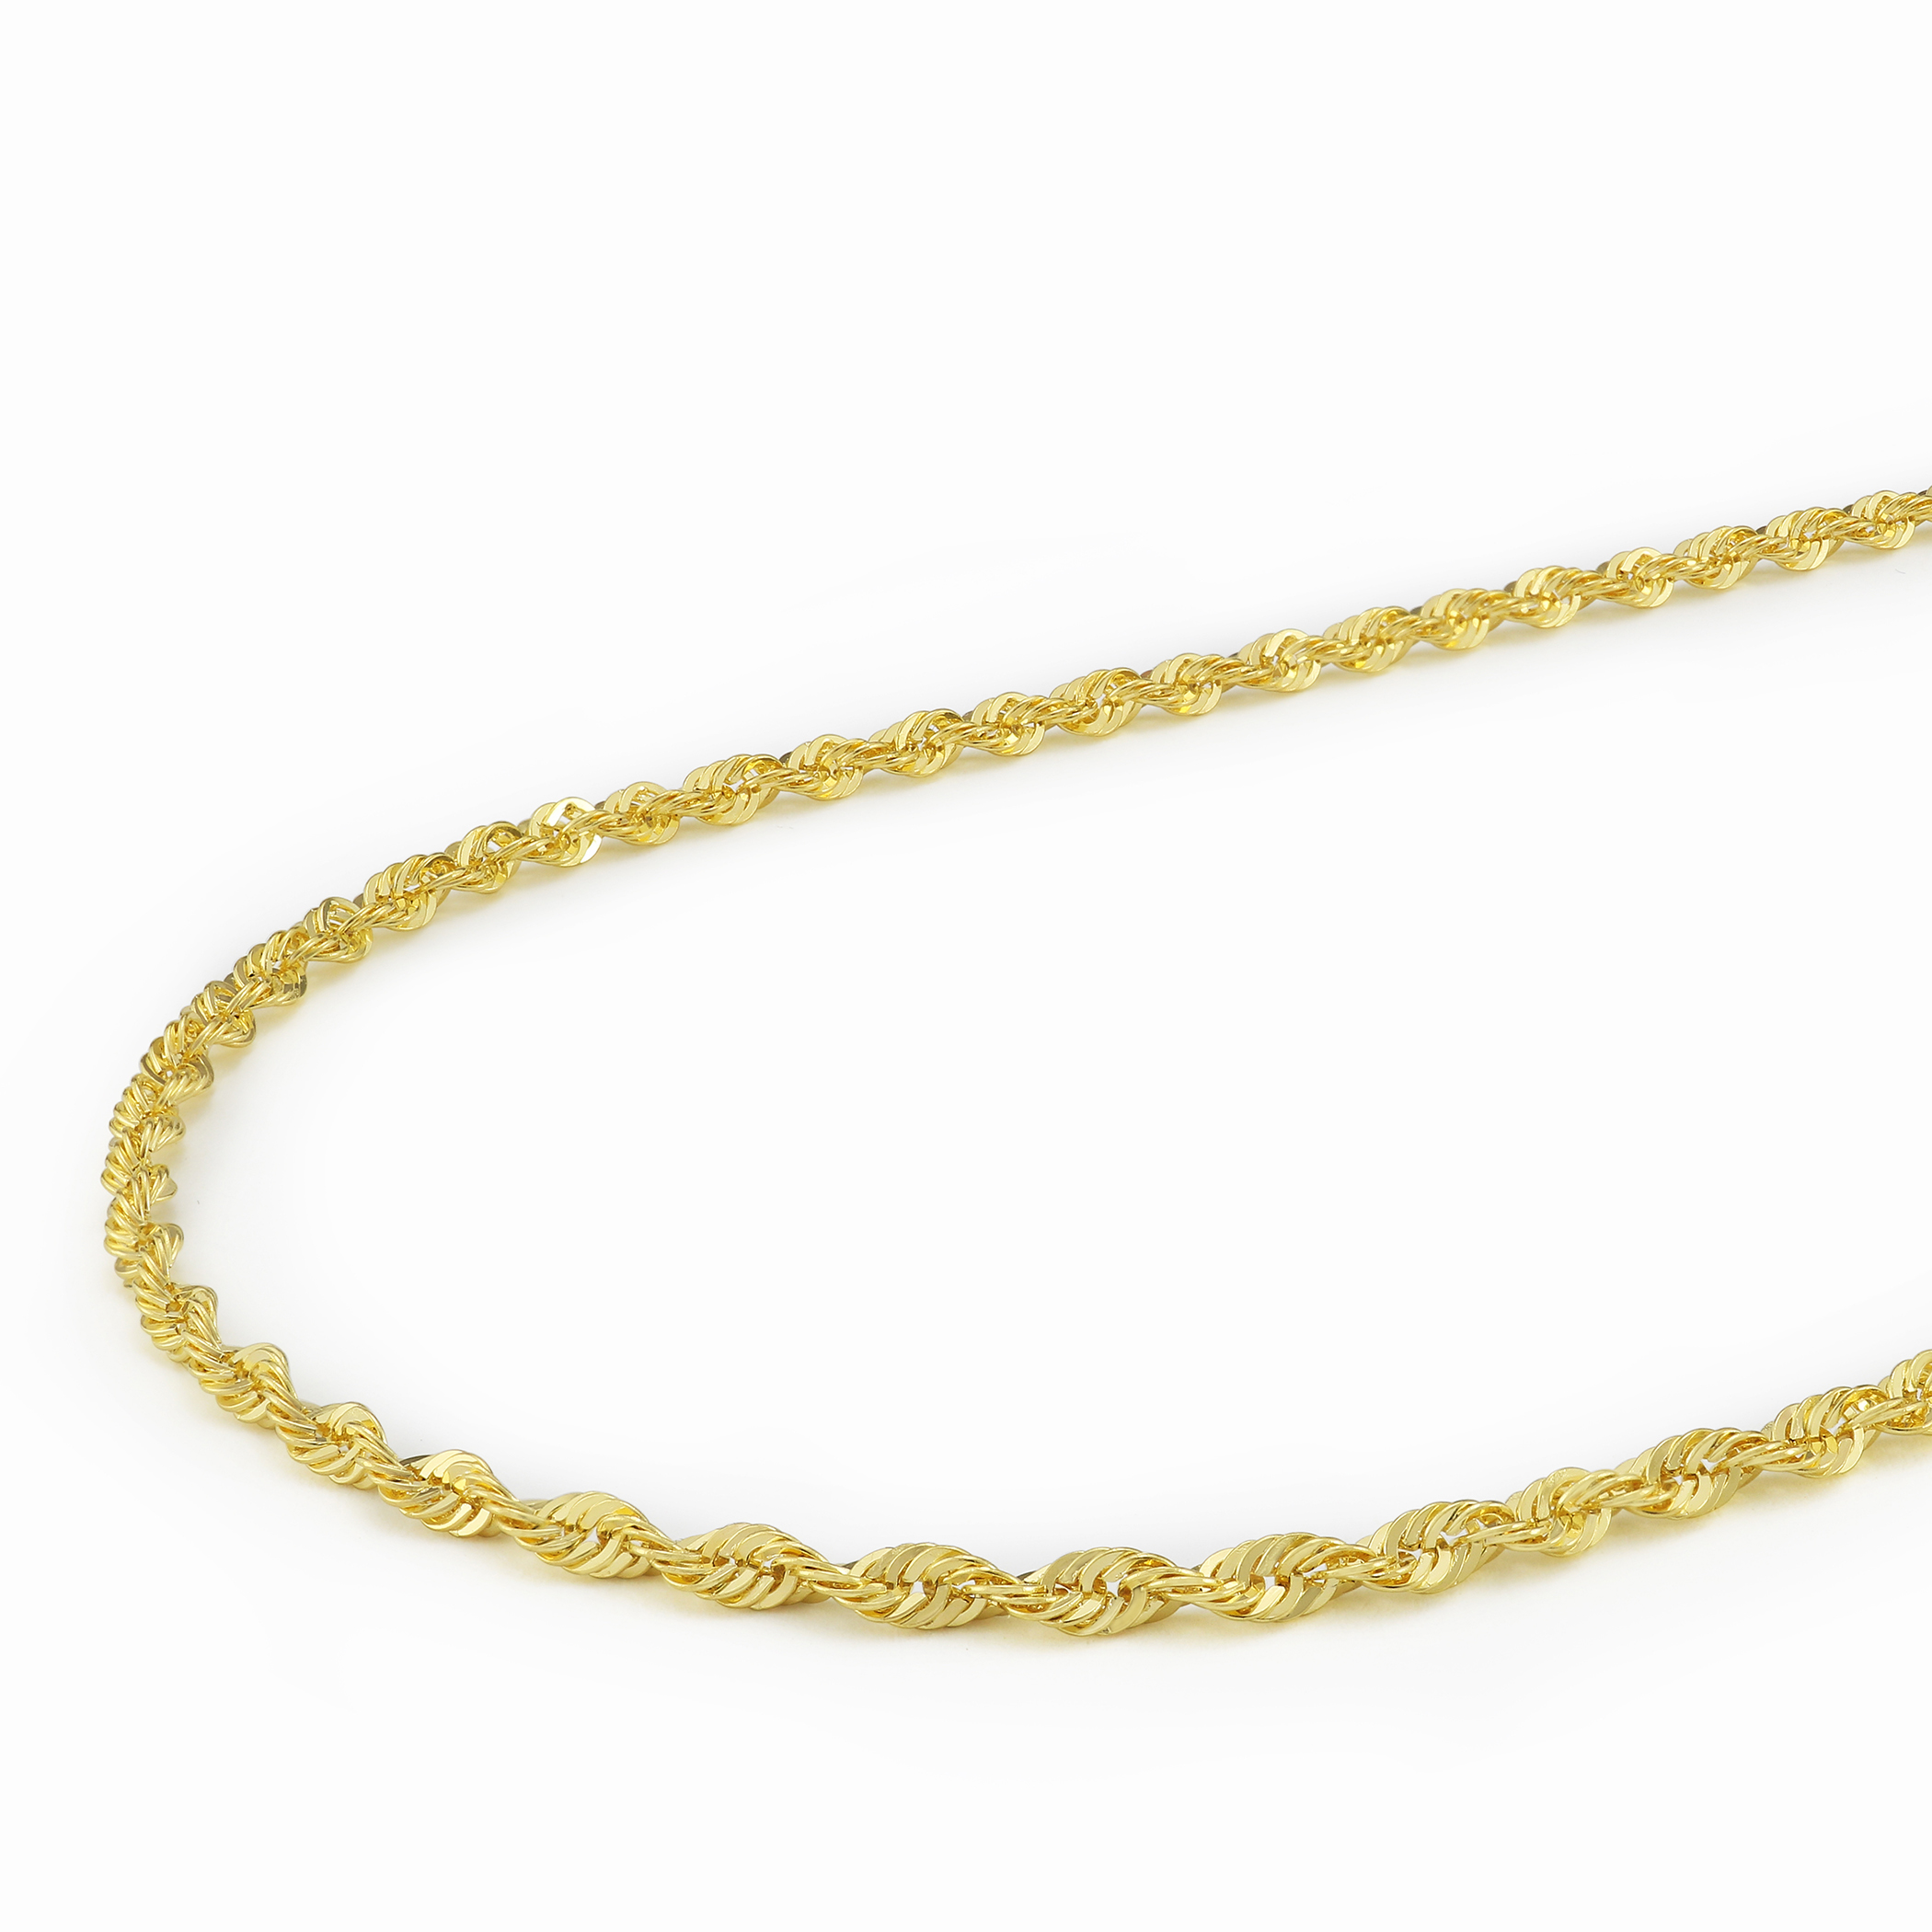 14K-Yellow-Gold-Solid-1-8mm-Diamond-Cut-Rope-Link-Chain-Pendant-Necklace-16-034-30-034 thumbnail 24